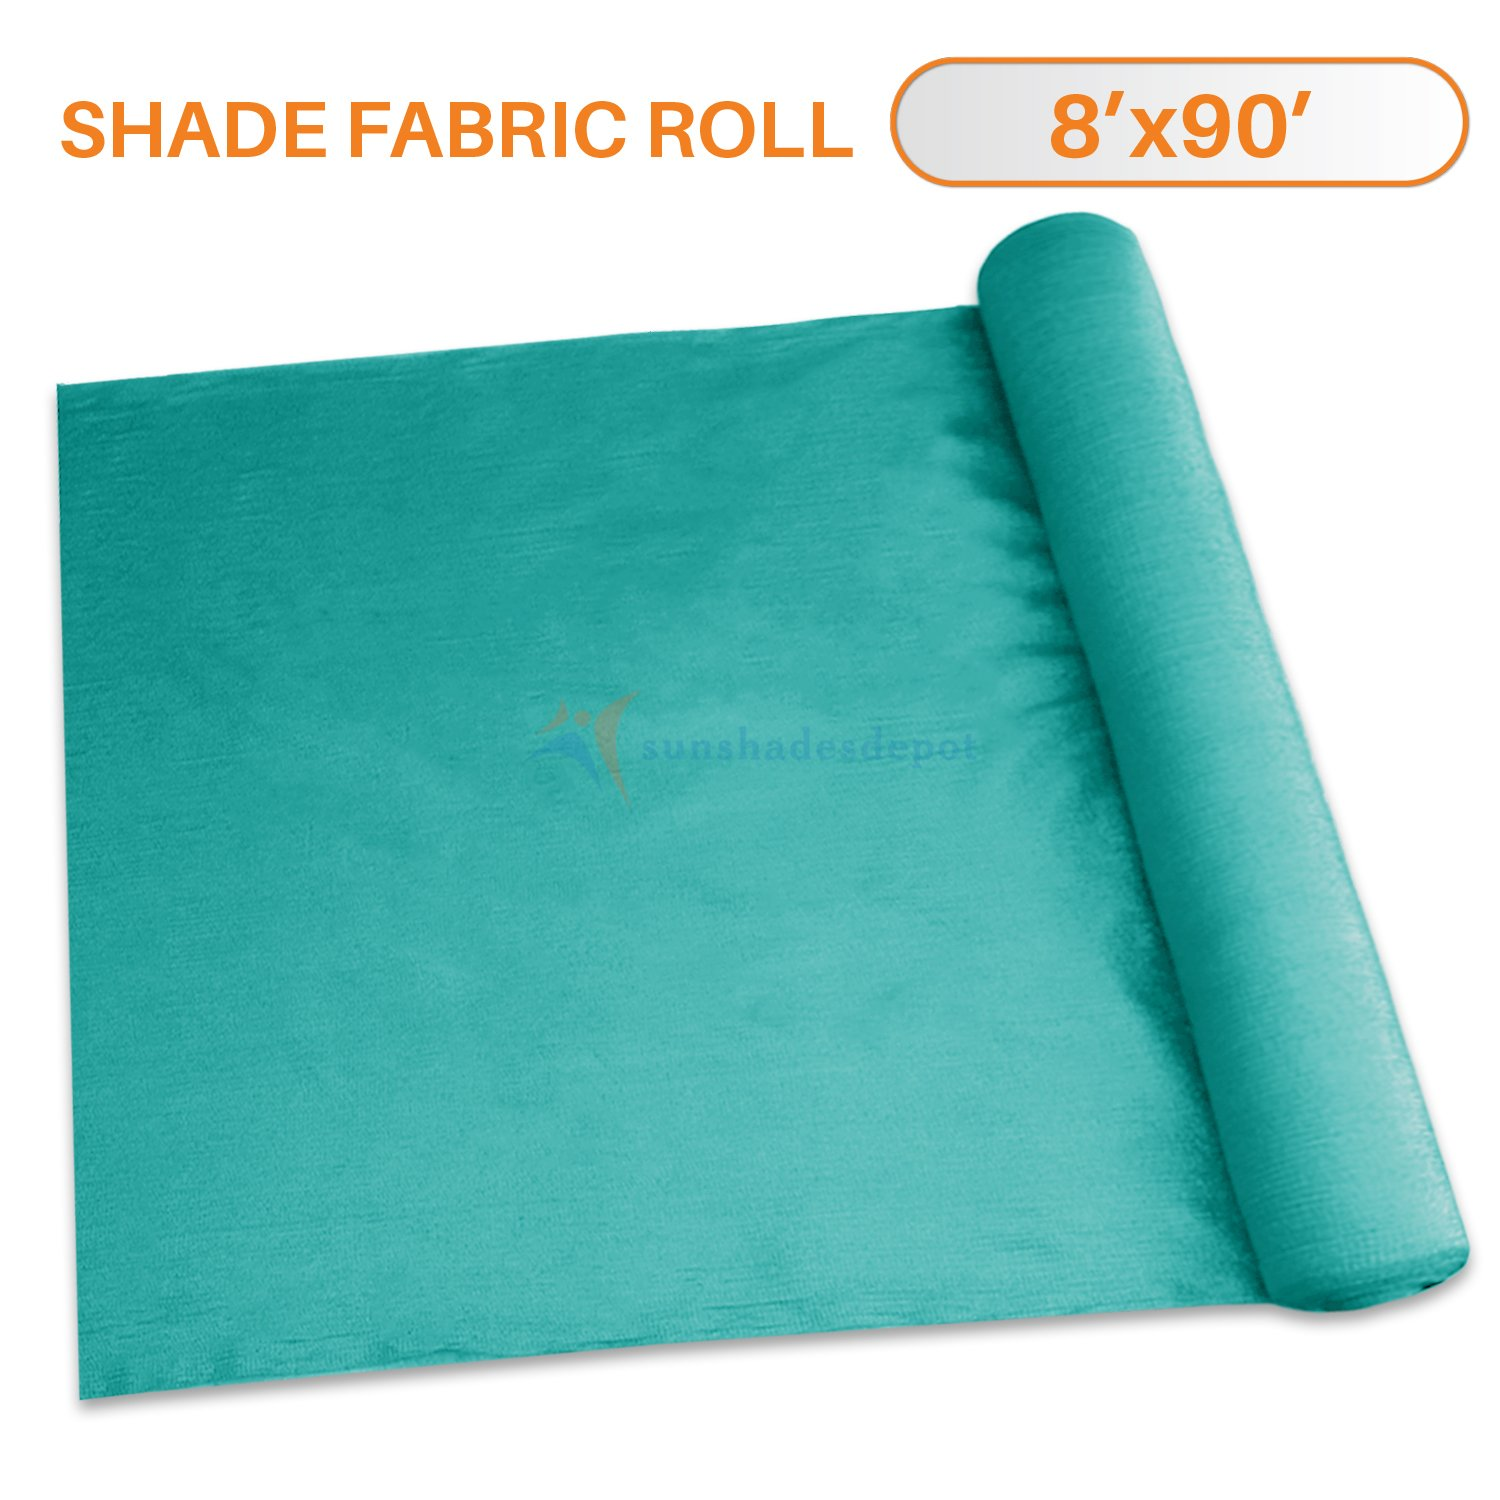 Sunshades Depot 8' x 90' Shade Cloth 180 GSM HDPE Turquoise Green Fabric Roll Up to 95% Blockage UV Resistant Mesh Net